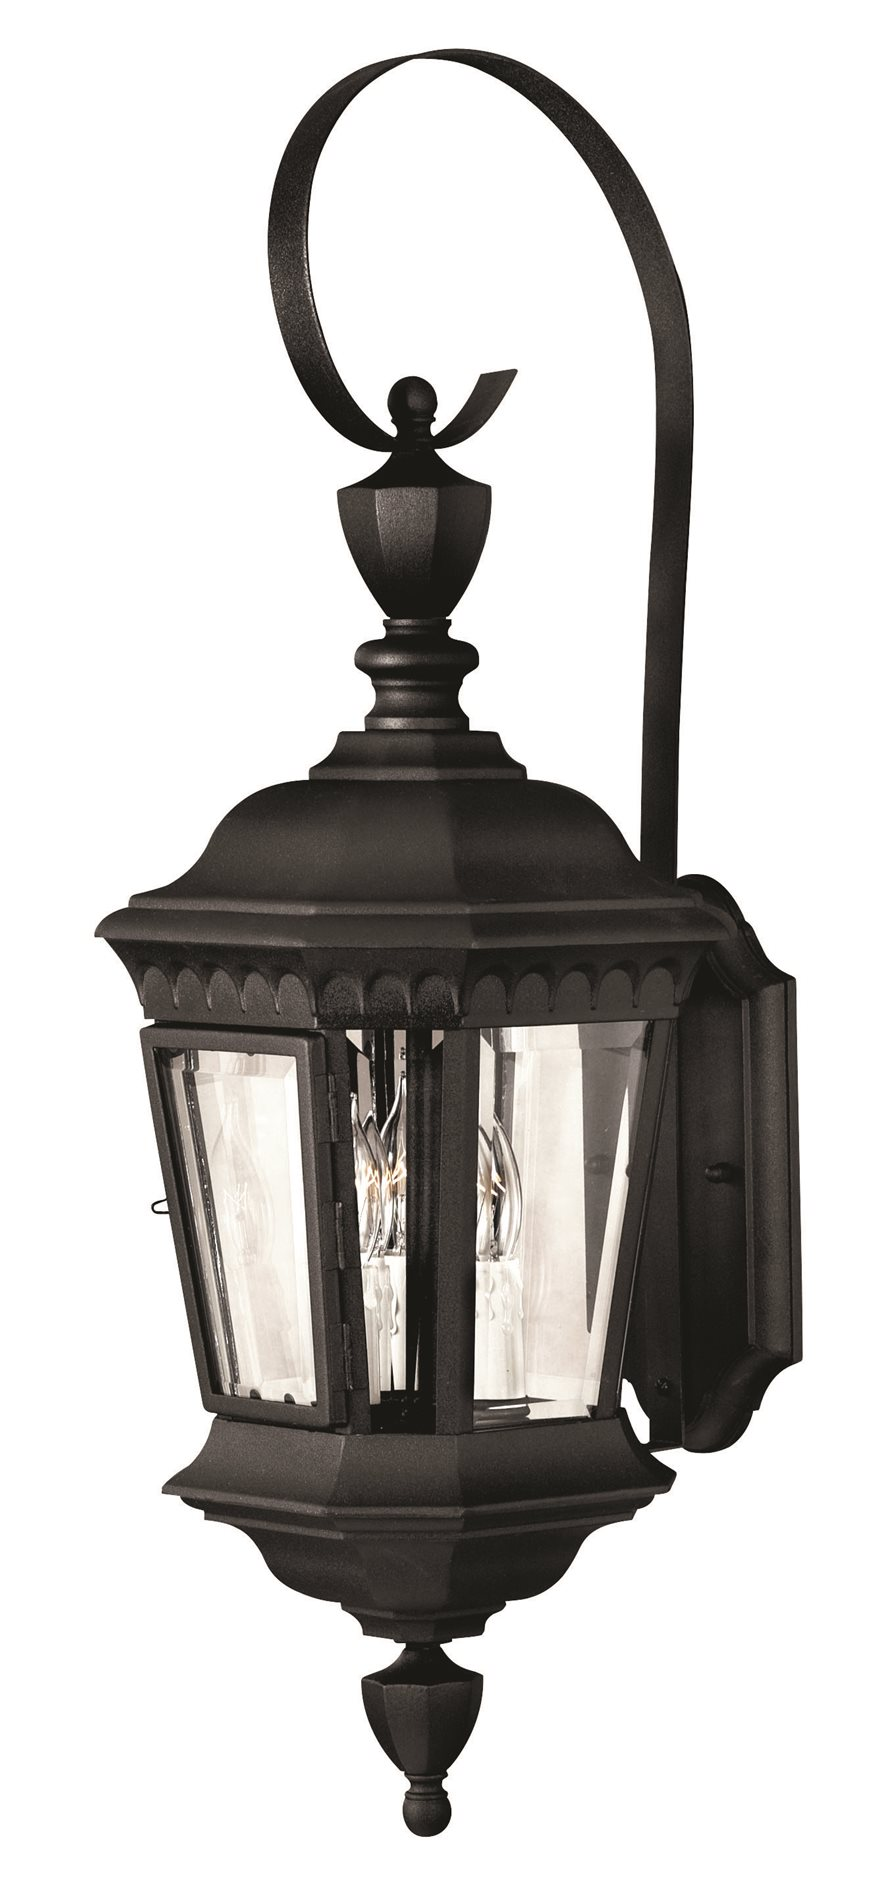 Hinkley Lighting 1704BK Camelot Traditional Outdoor Wall Sconce - Large HK-1704-BK